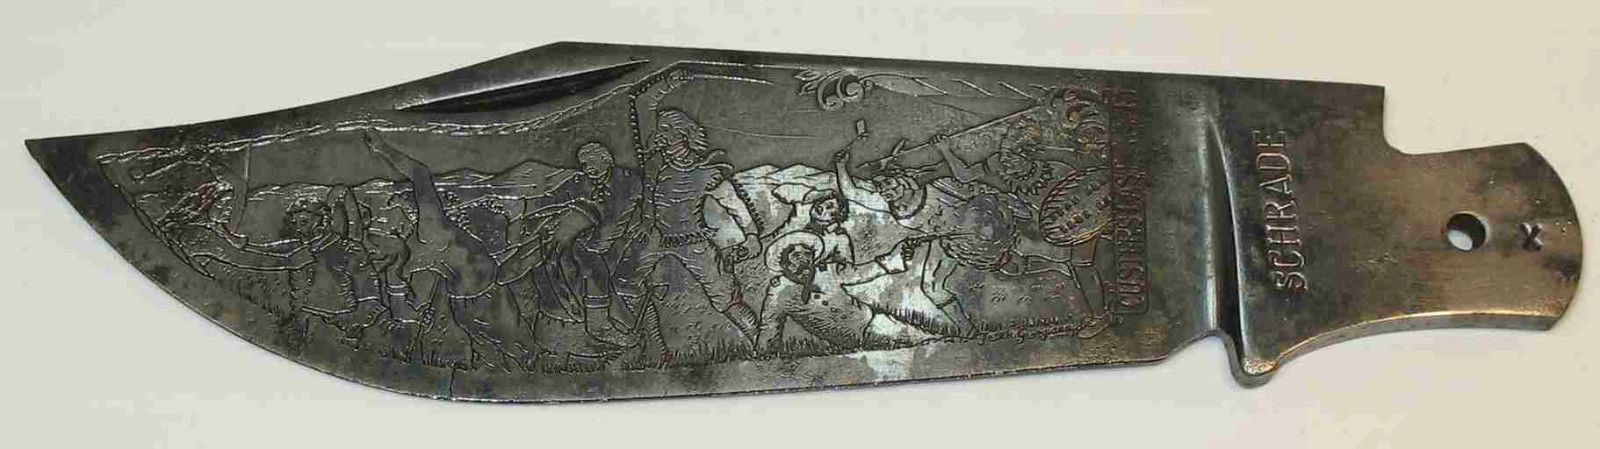 Vintage SCHRADE  Etched BLADE ONLY for CUSTER'S LAST FIGHT Folding KNIFE  https://t.co/acQYbOxX6r https://t.co/NgNCIhaTMQ